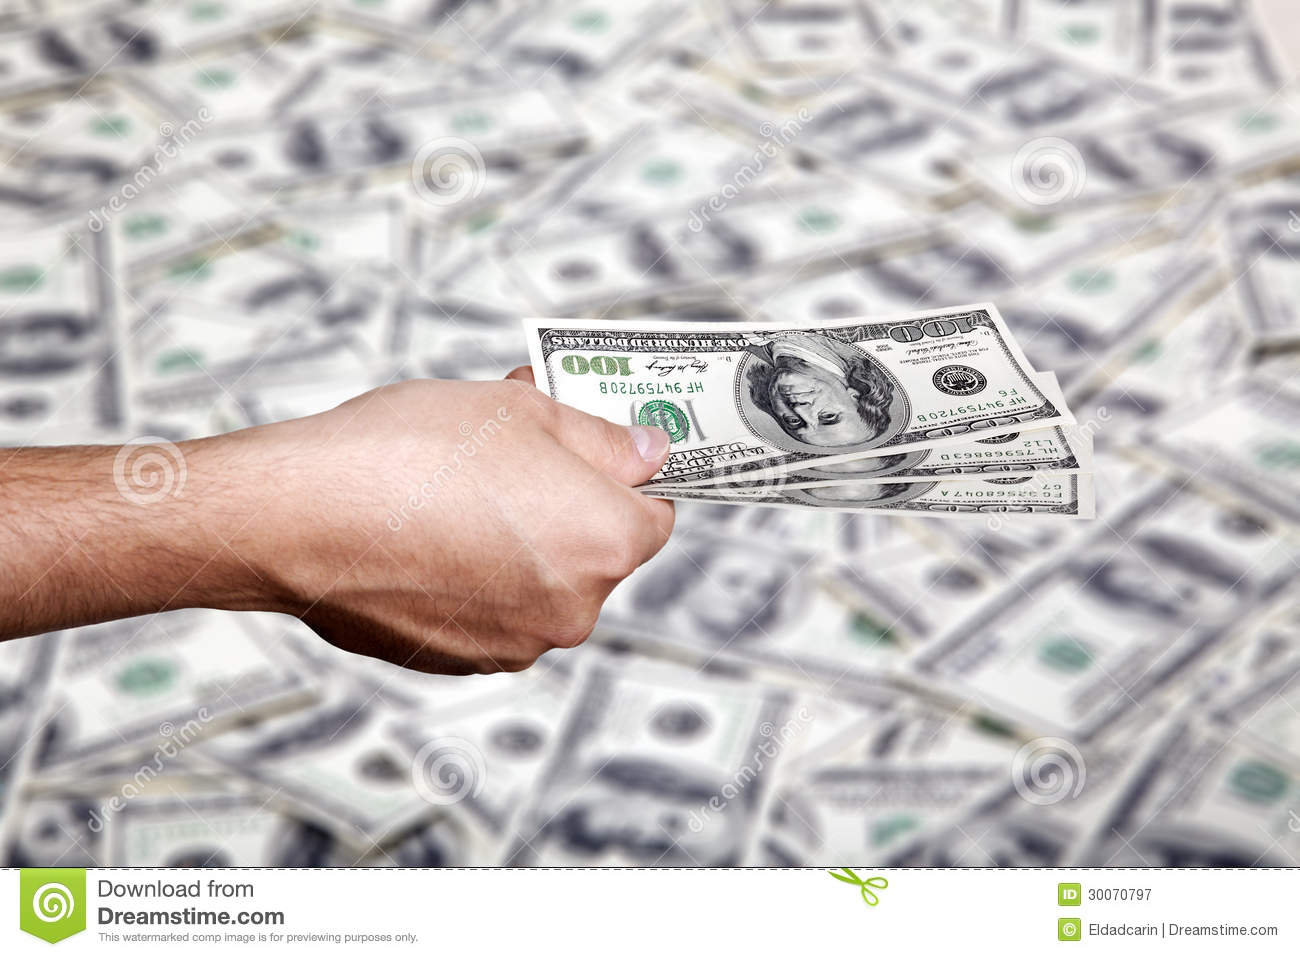 Handing Money over Cash Background